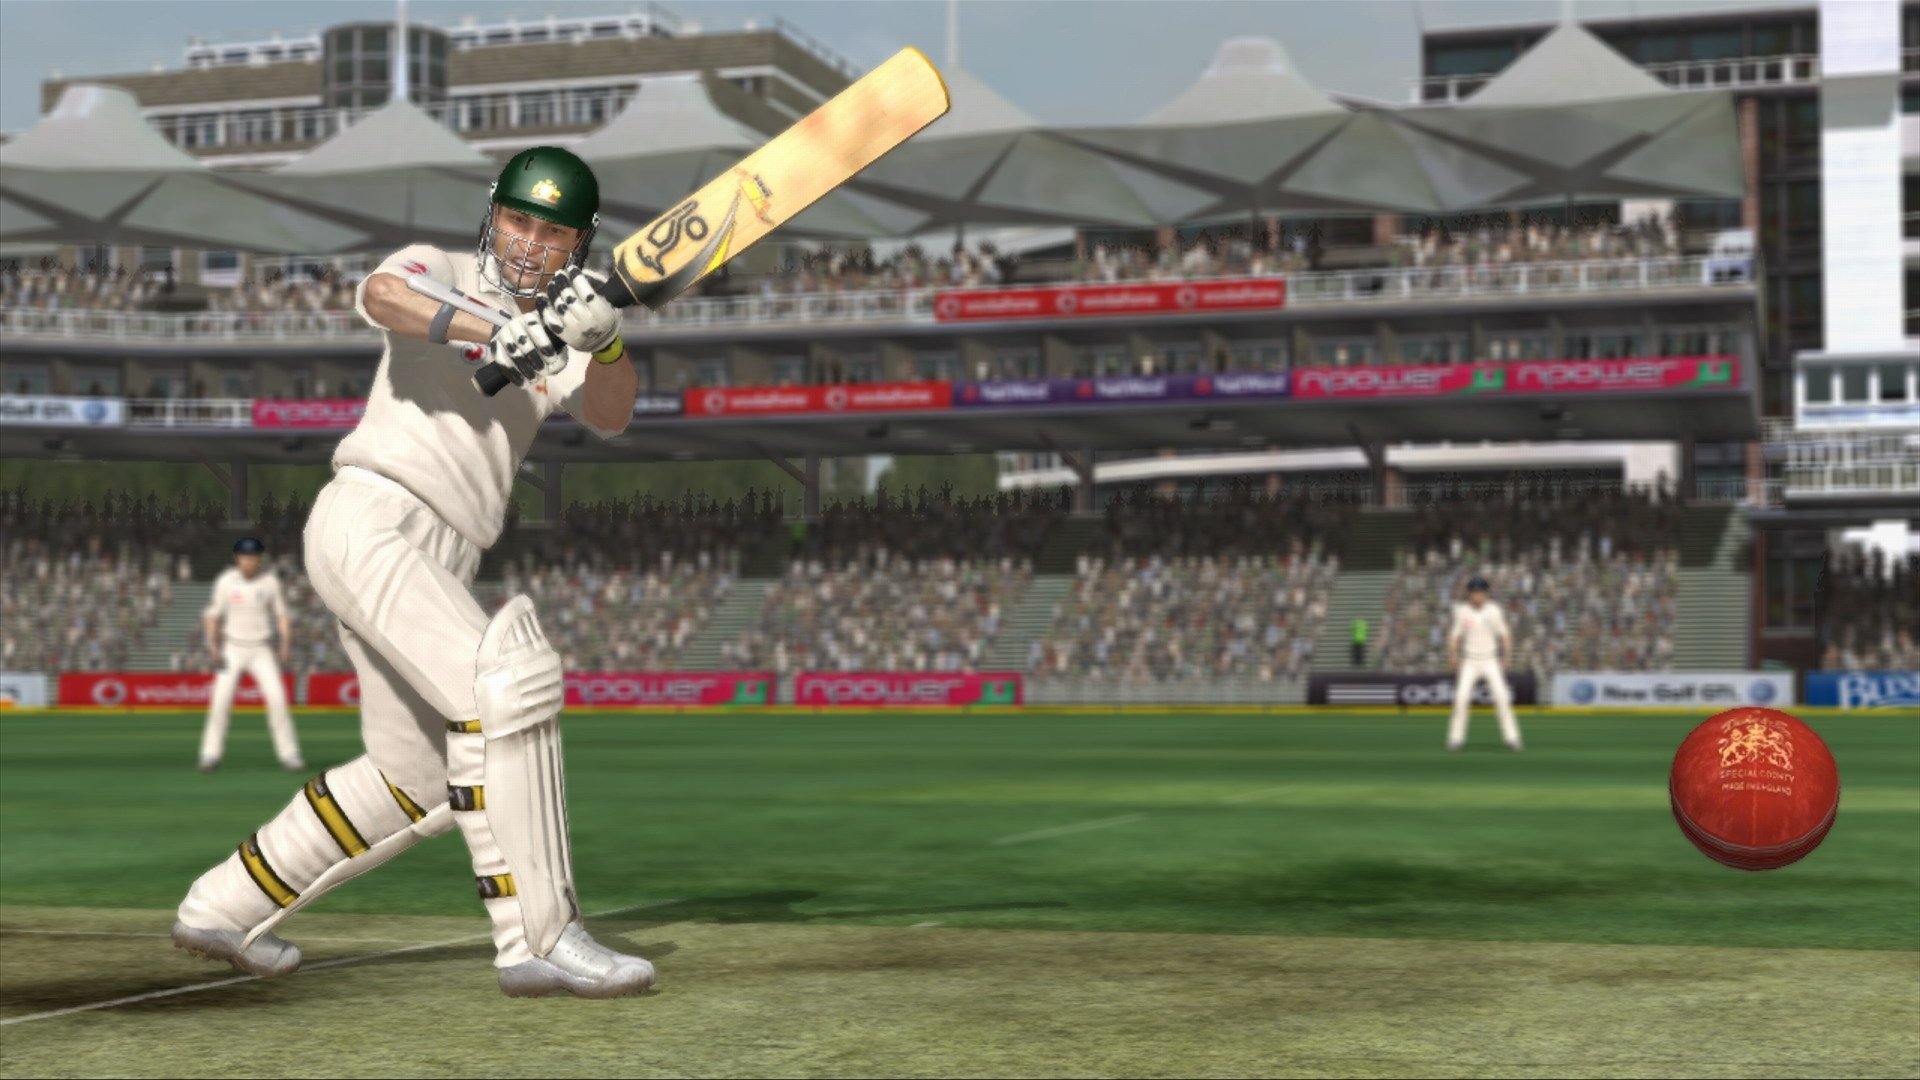 Ashes Cricket 2013 Free Download PC Game Full Version ISO